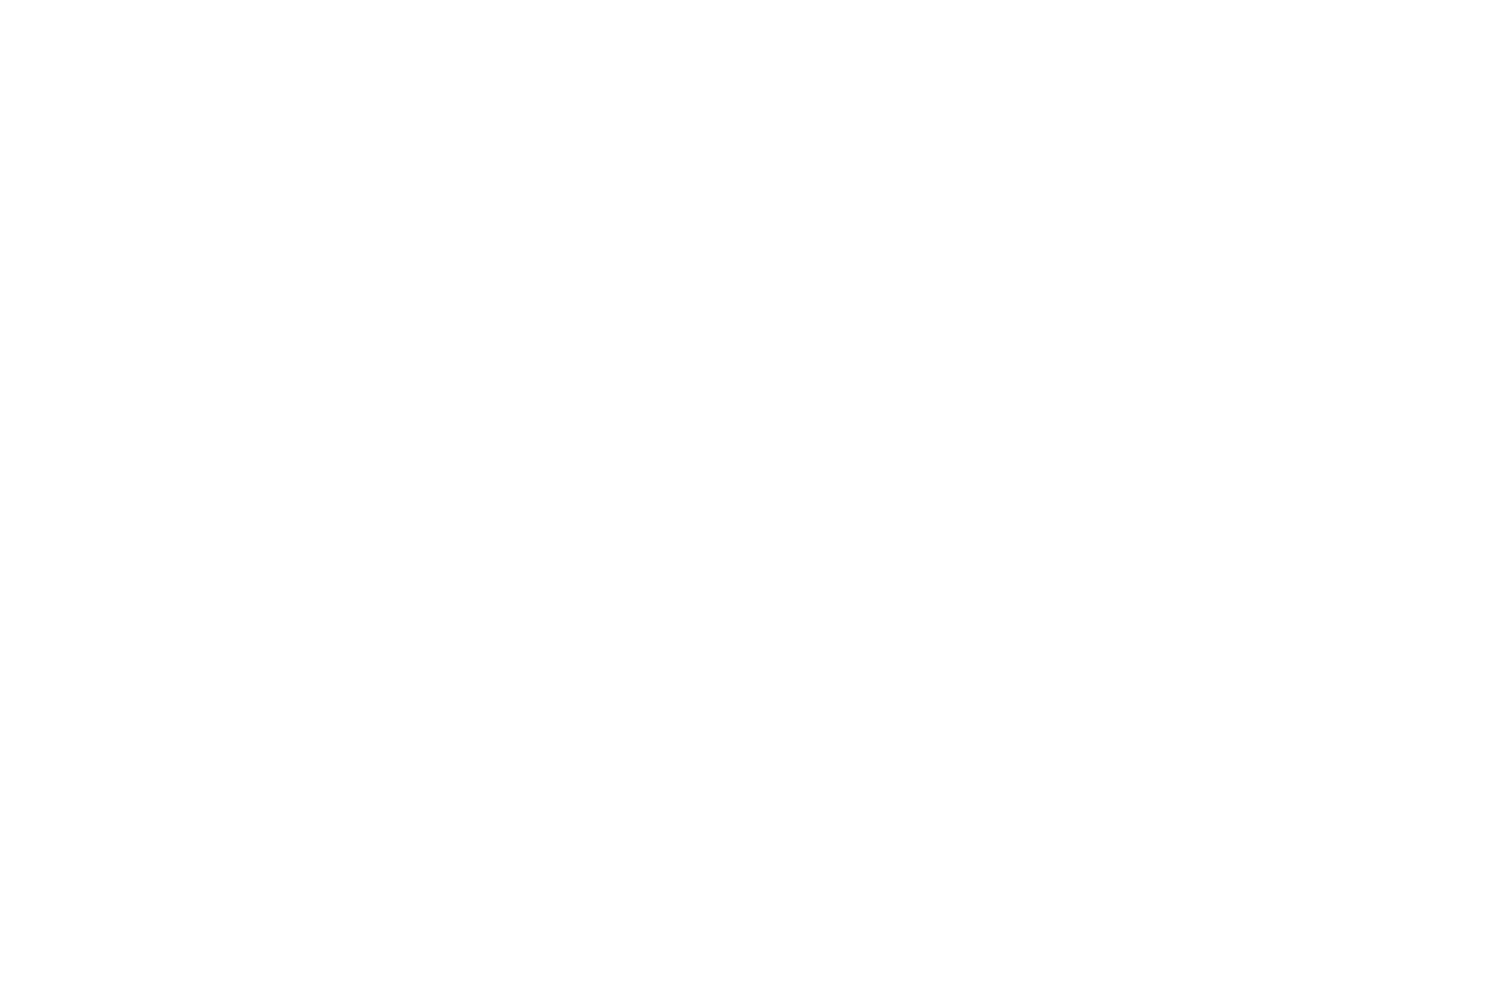 Turley Solutions & Innovations White Logo